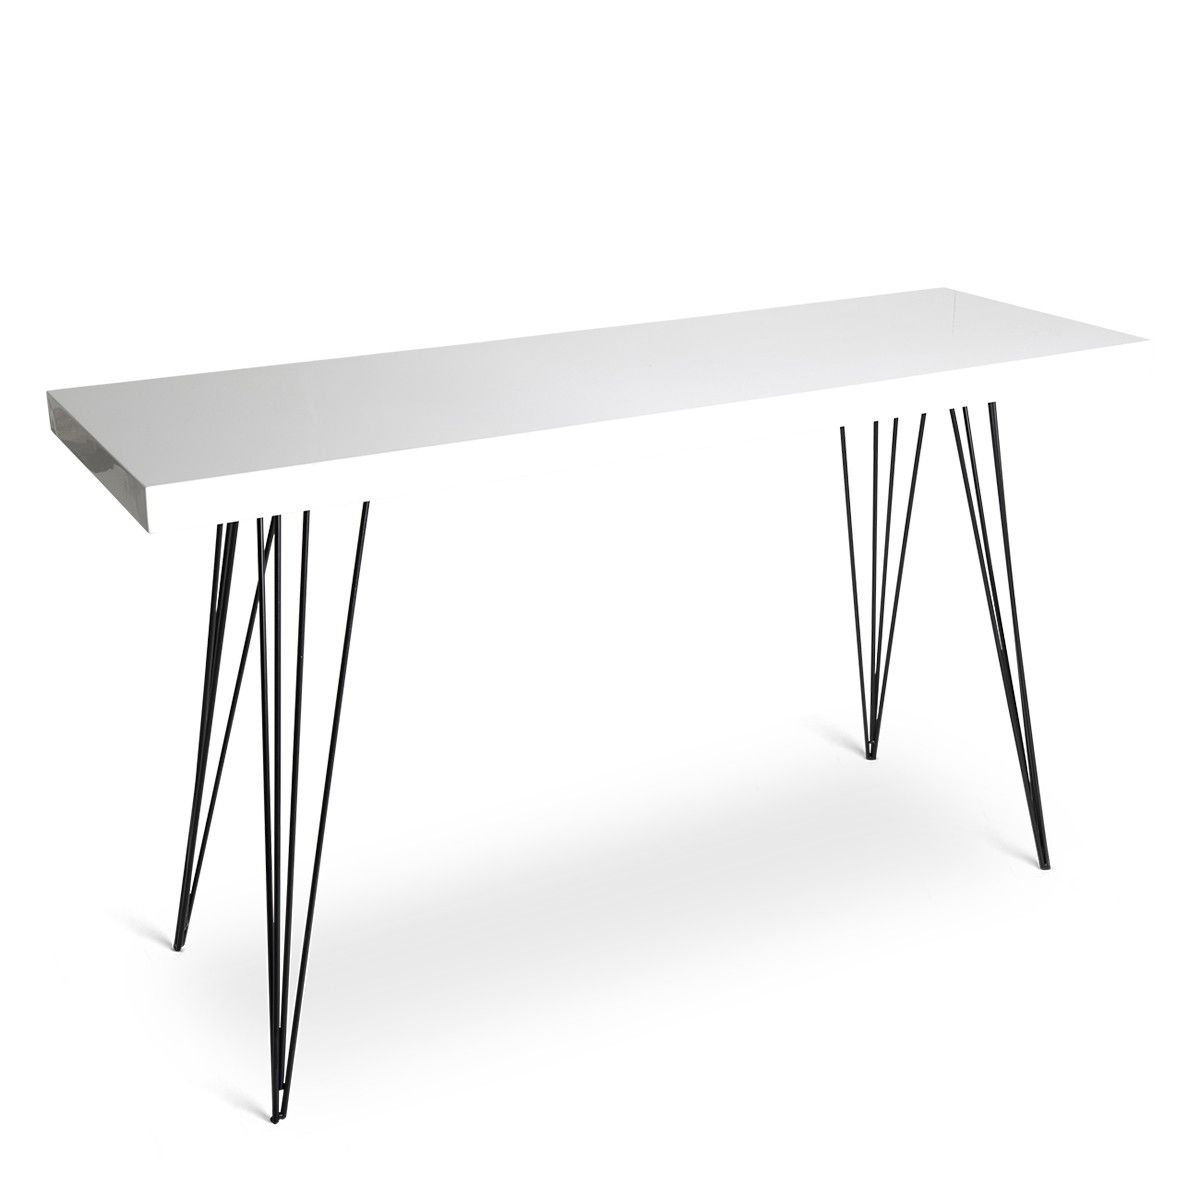 White Laquered Table With Hairpin Legs.